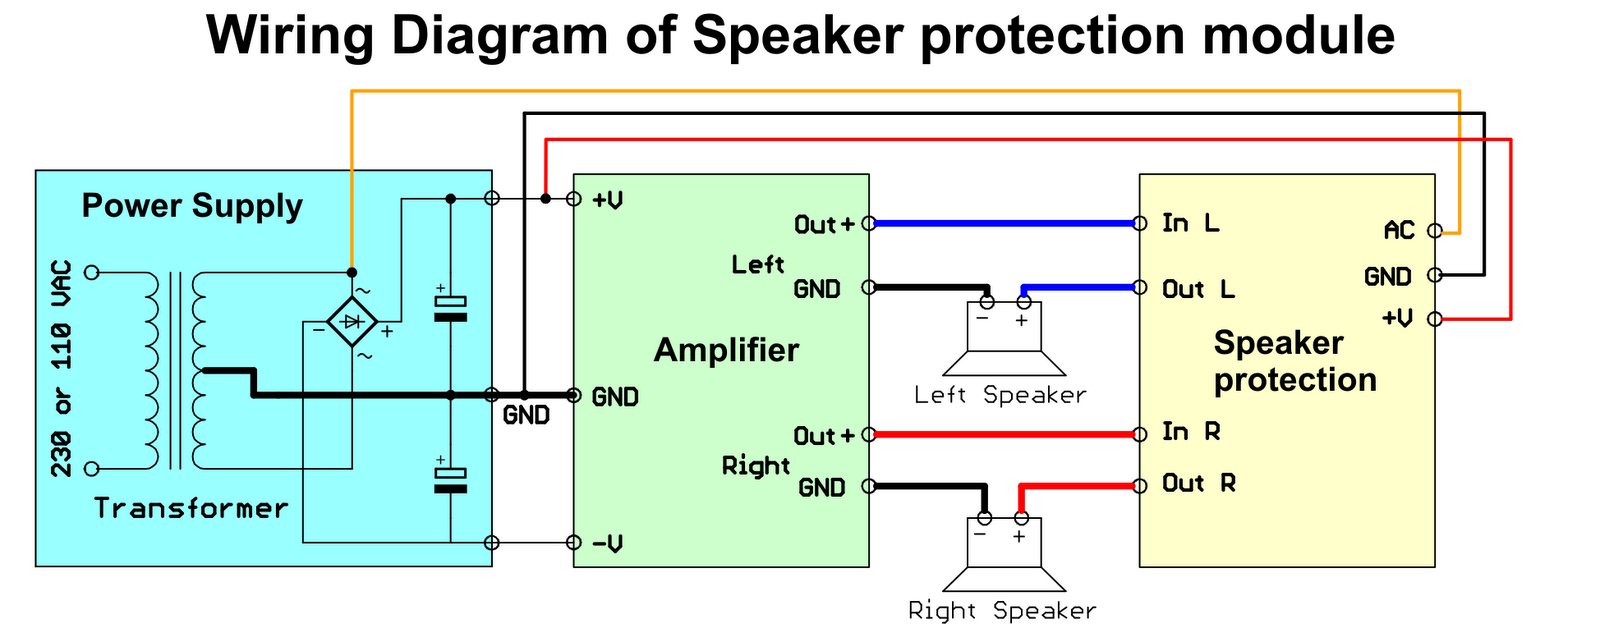 DIYfan: Speaker protection with uPC1237